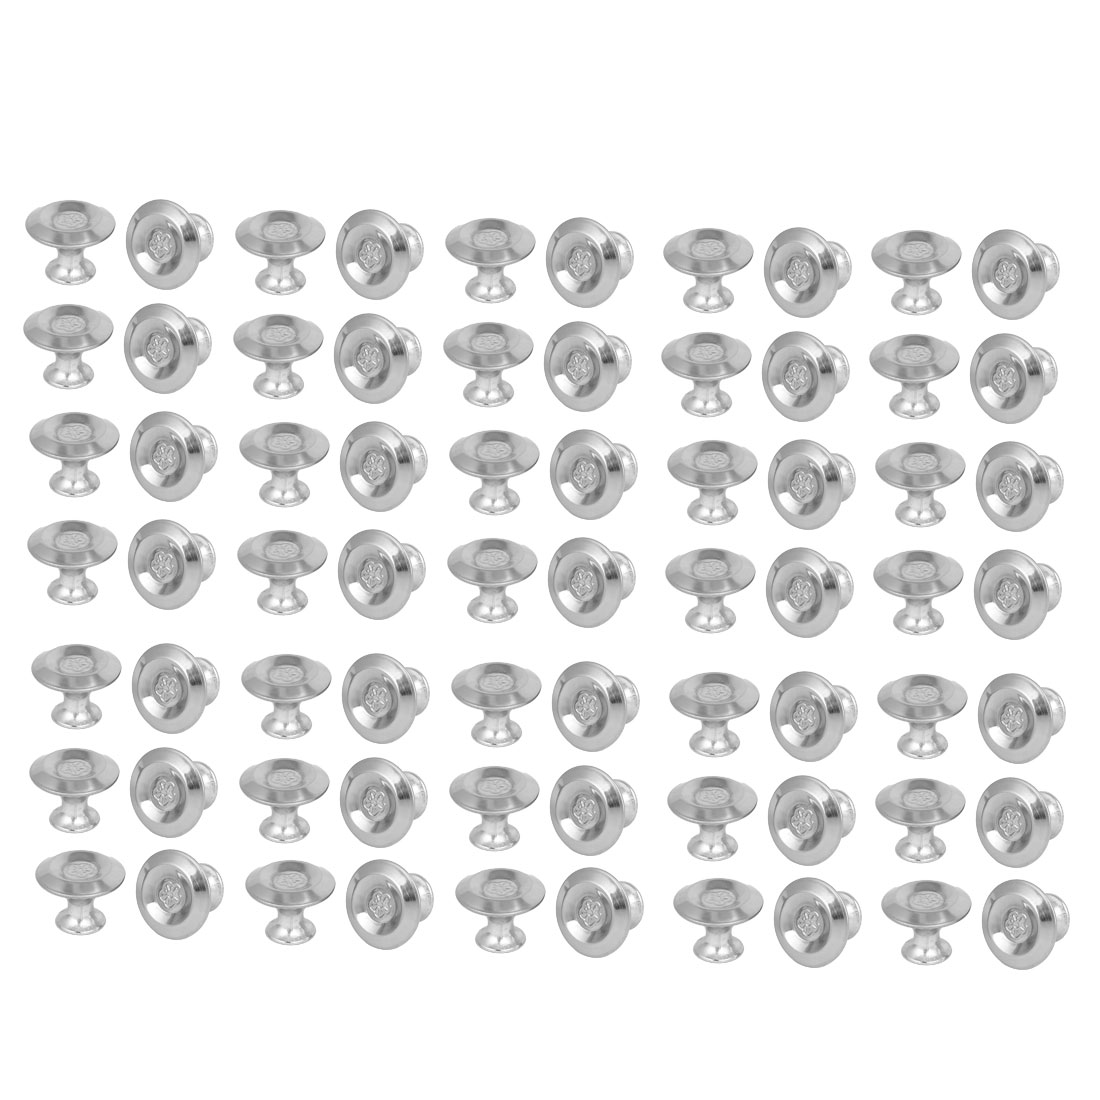 Cabinet Drawer Metal Single Hole Flower Pattern Pull Knobs 27.5mmx20mm 70pcs